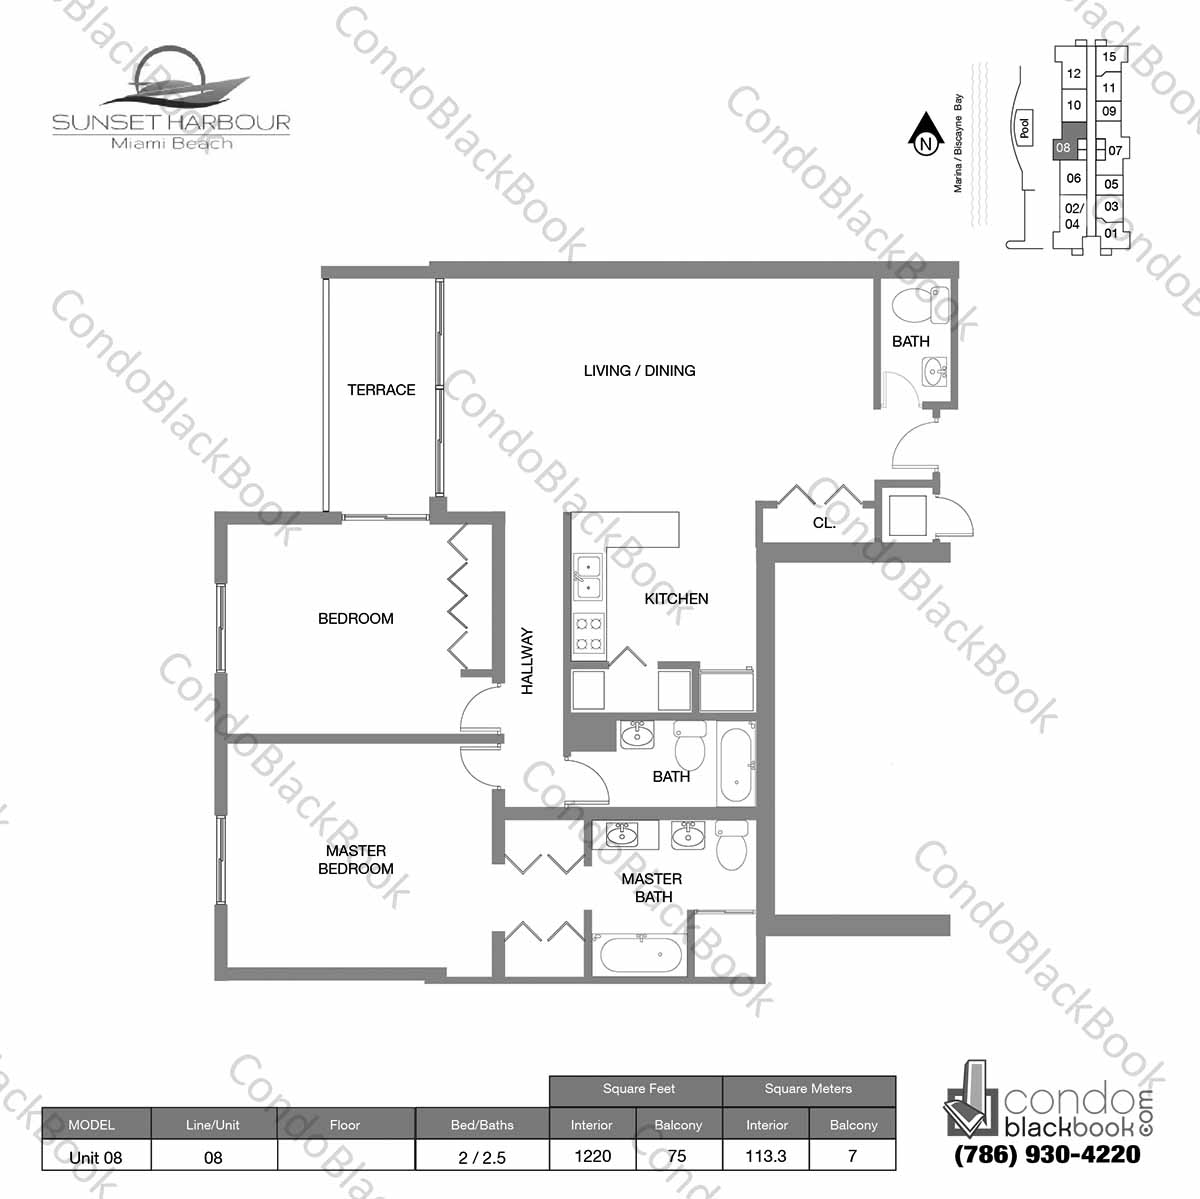 Floor plan for Sunset Harbour South Beach Miami Beach, model Unit 08, line 08S, 2 /2.5 bedrooms, 1220 sq ft